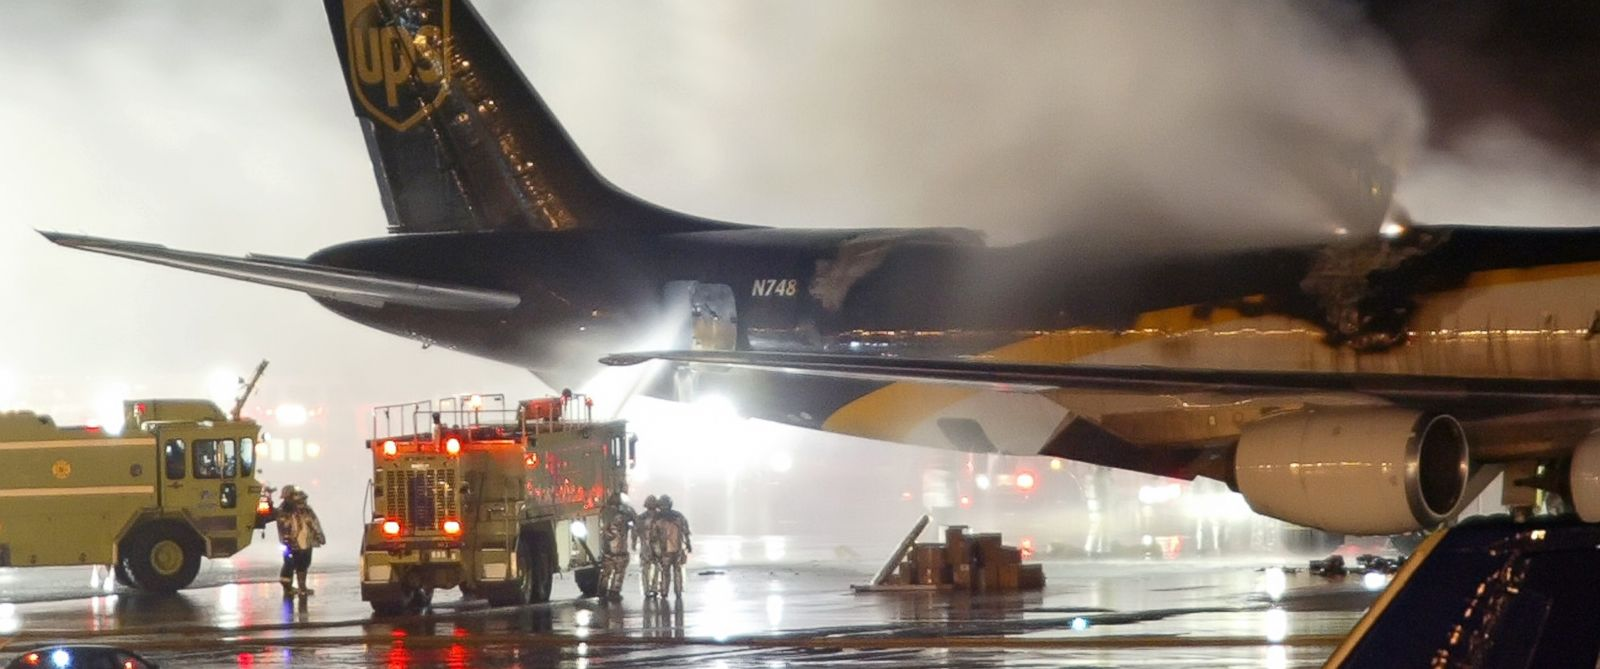 PHOTO: Firefighters battle a blaze on-board a UPS cargo plane, Feb. 8, 2006, at Philadelphia International Airport in Philadelphia.